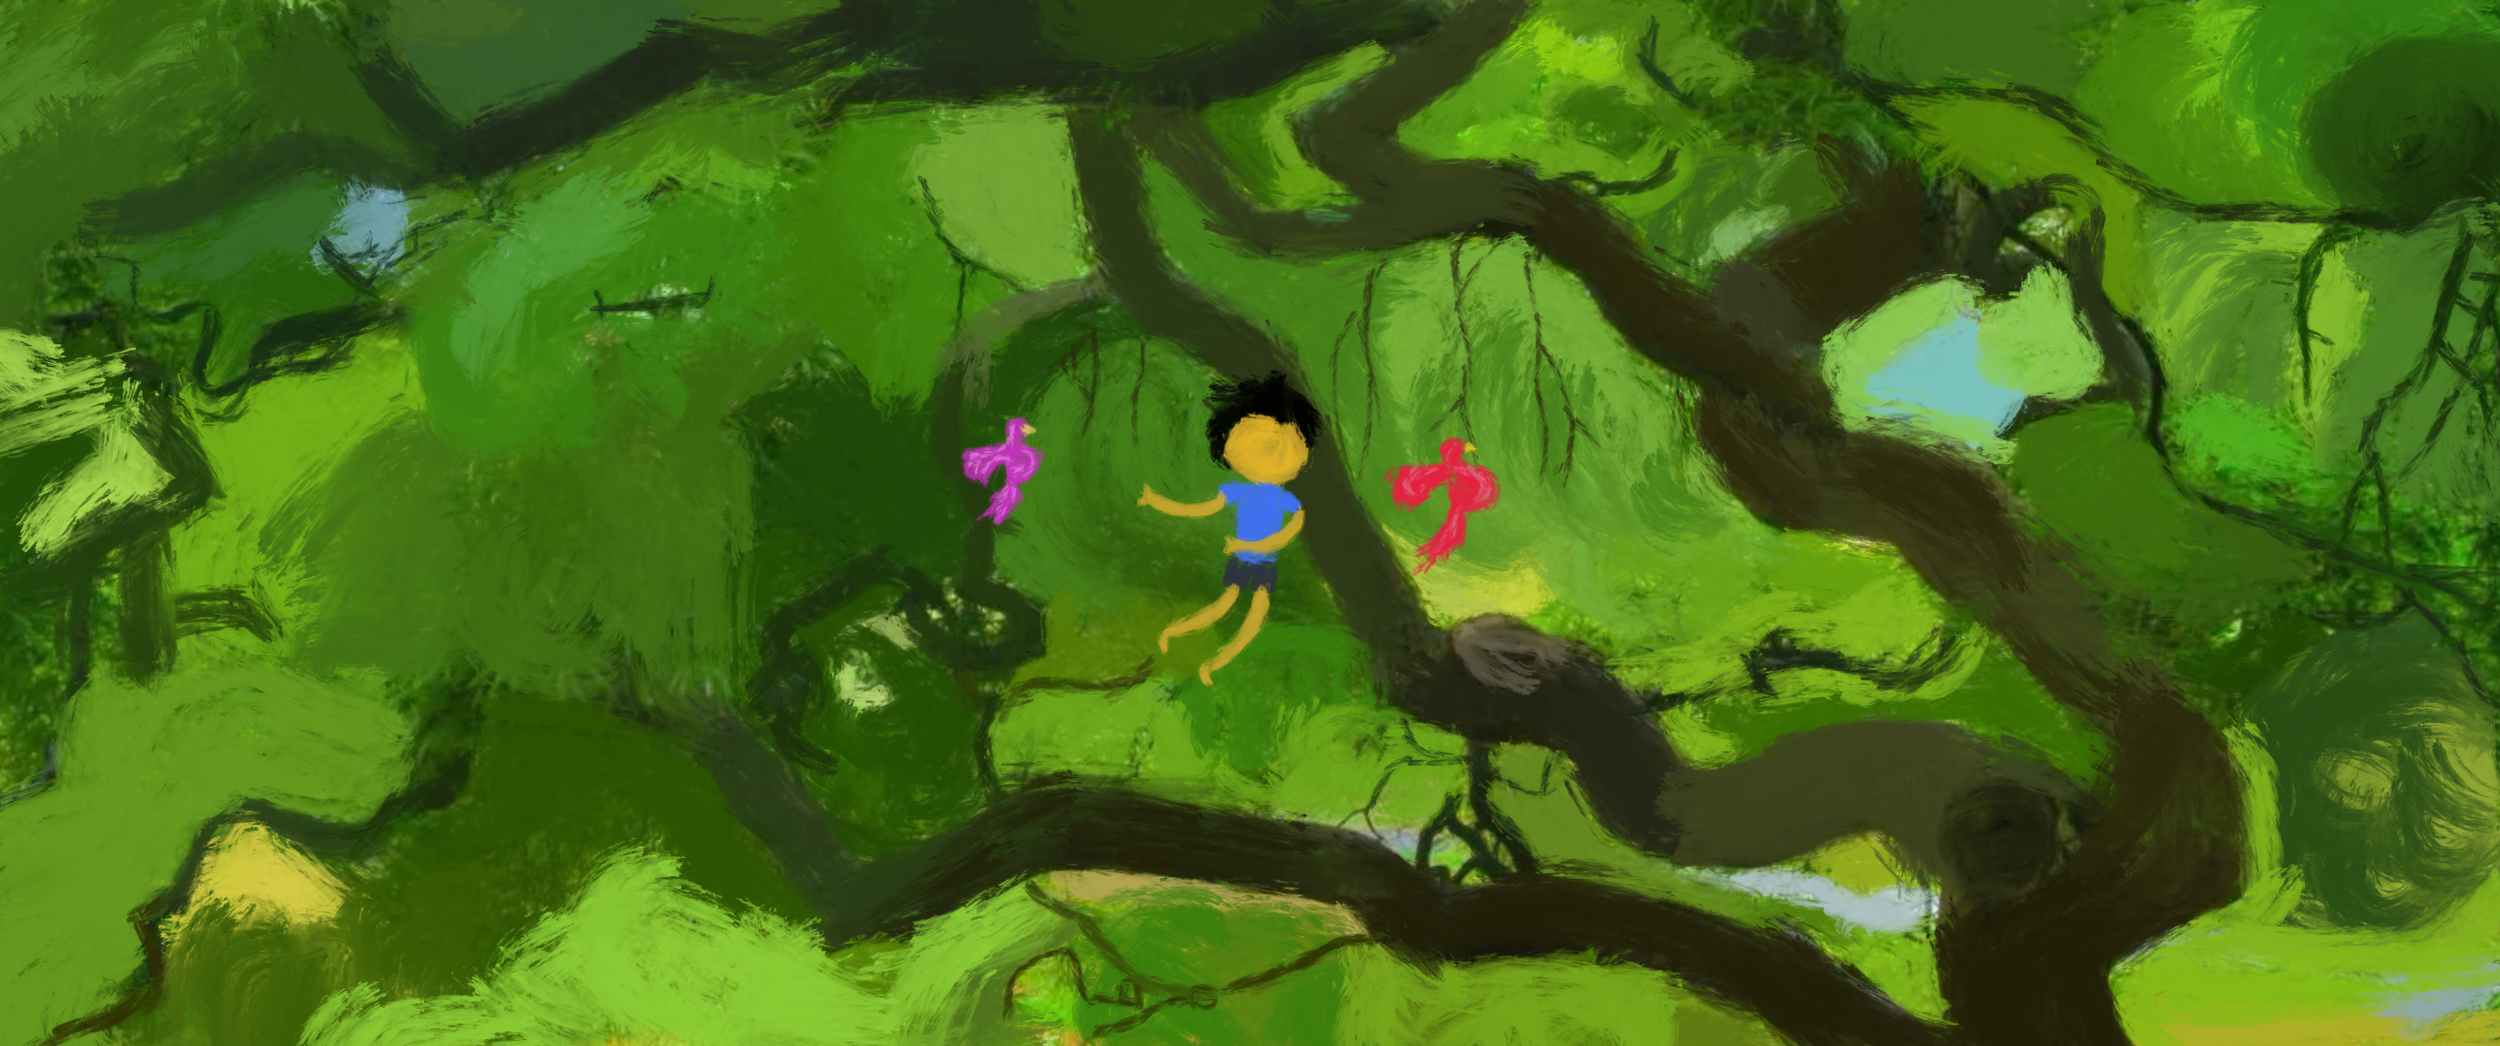 Boy_and_tree_4.png